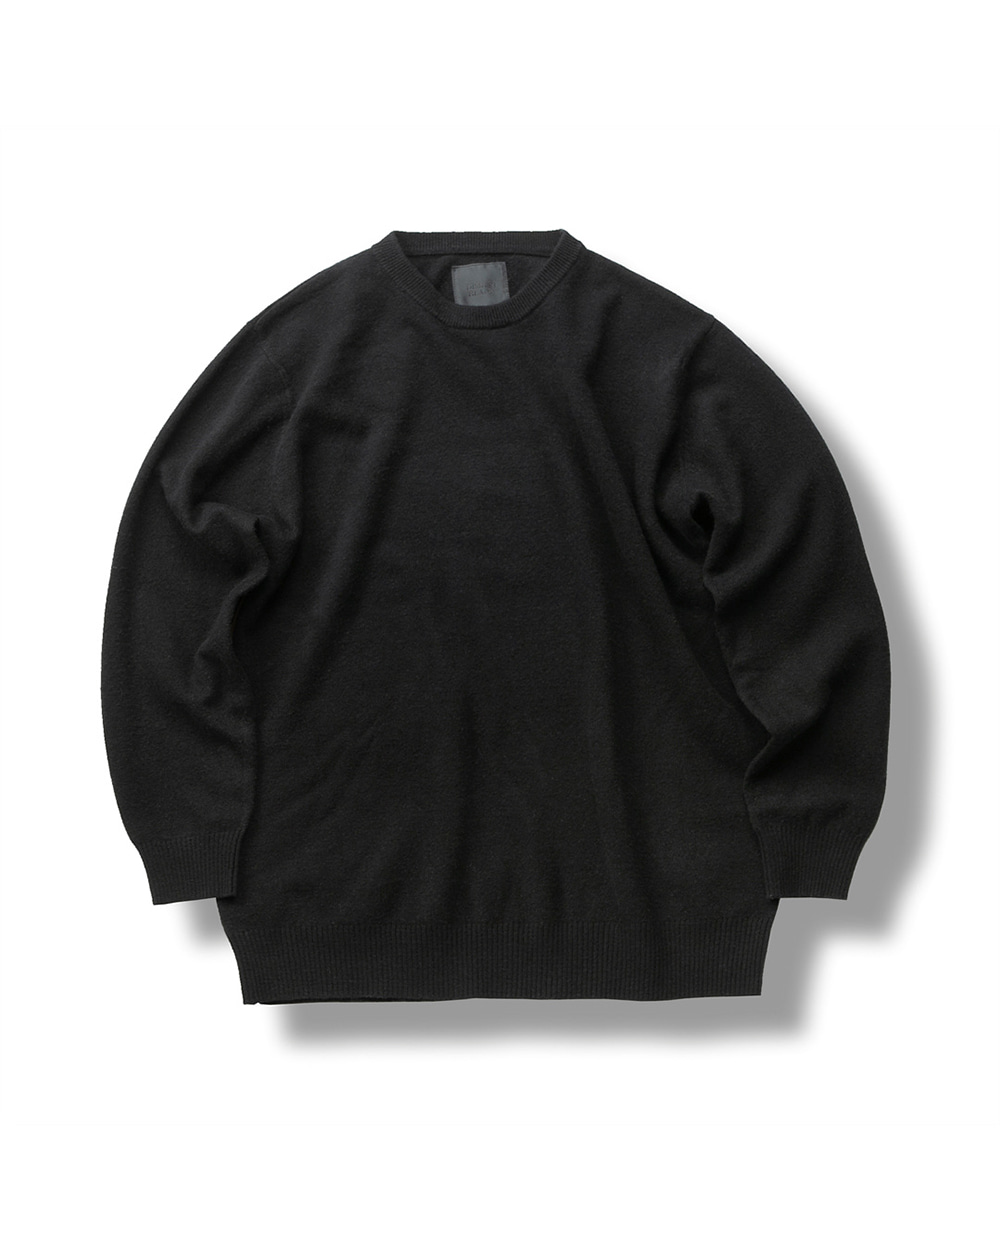 FINE WOOL CREWNECK KNIT BLACK